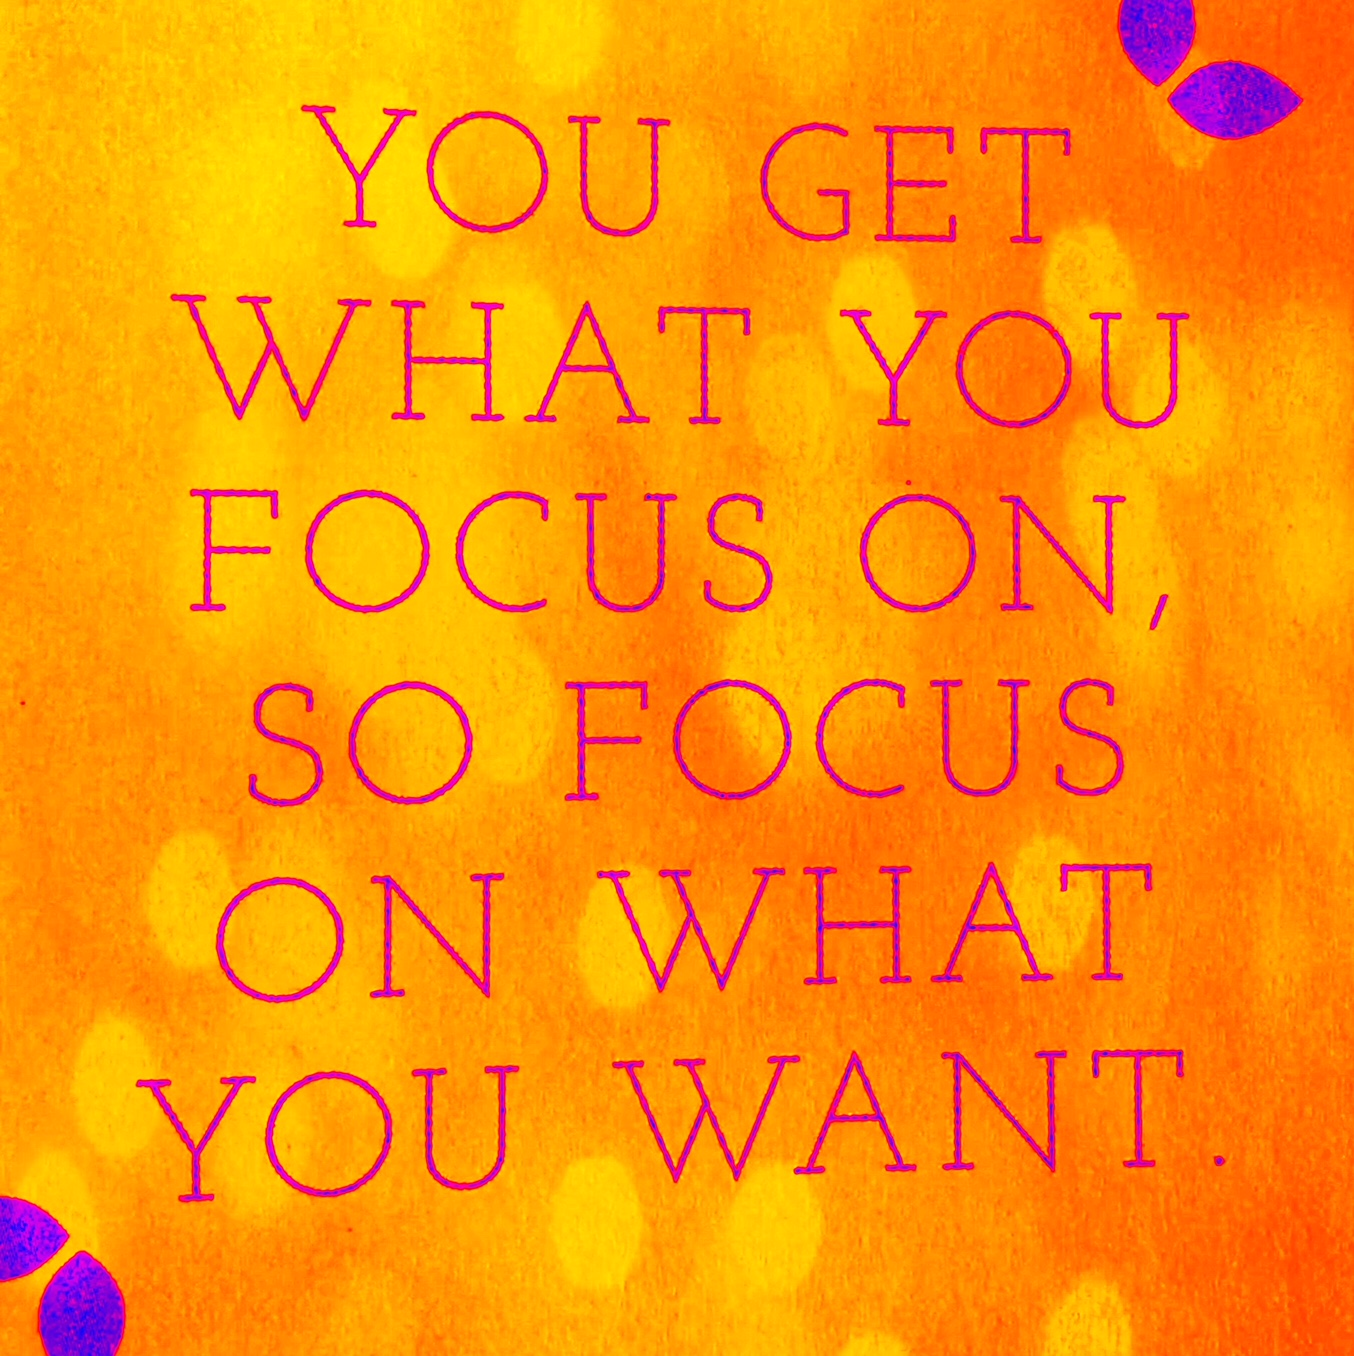 Focus is my word for 2018